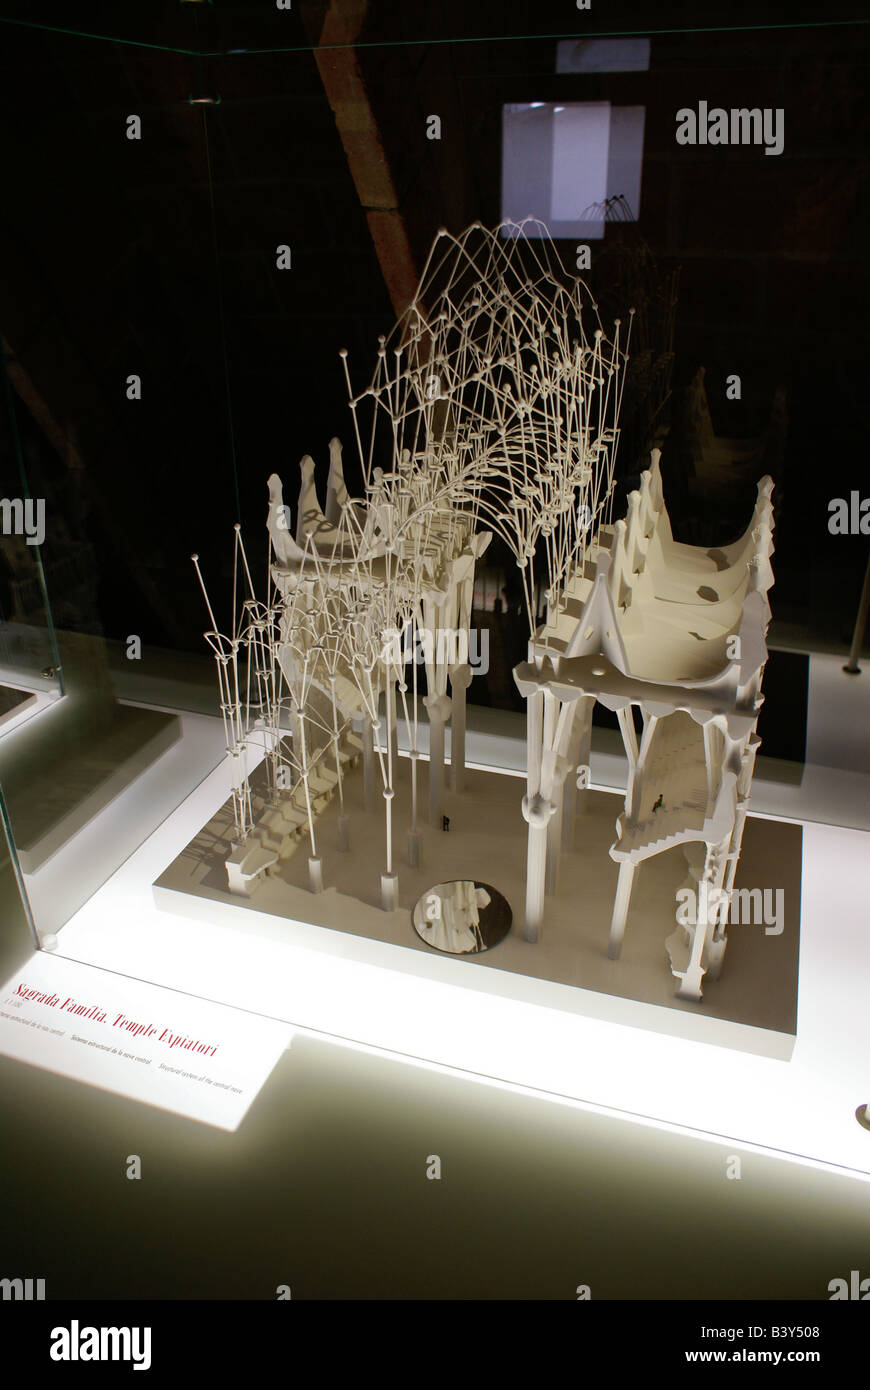 scale model from Sagrada Familia church, showing the structural elements supporting it - Stock Image